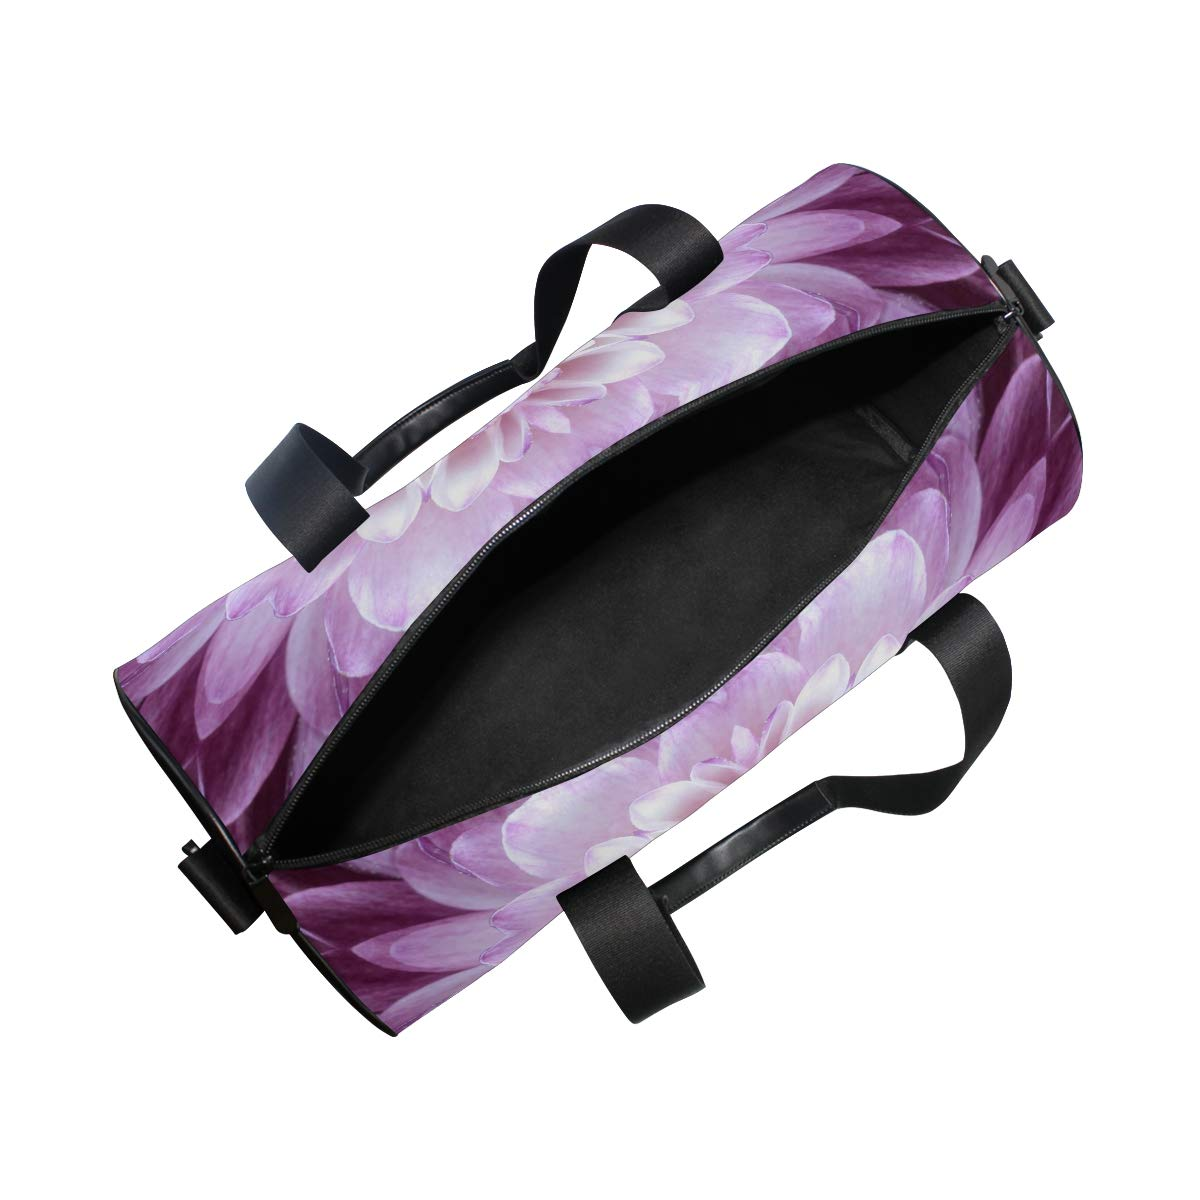 Mandala Bohemian Yoga Sports Gym Duffle Bags Tote Sling Travel Bag Patterned Canvas with Pocket and Zipper For Men Women Bag by EVERUI (Image #5)